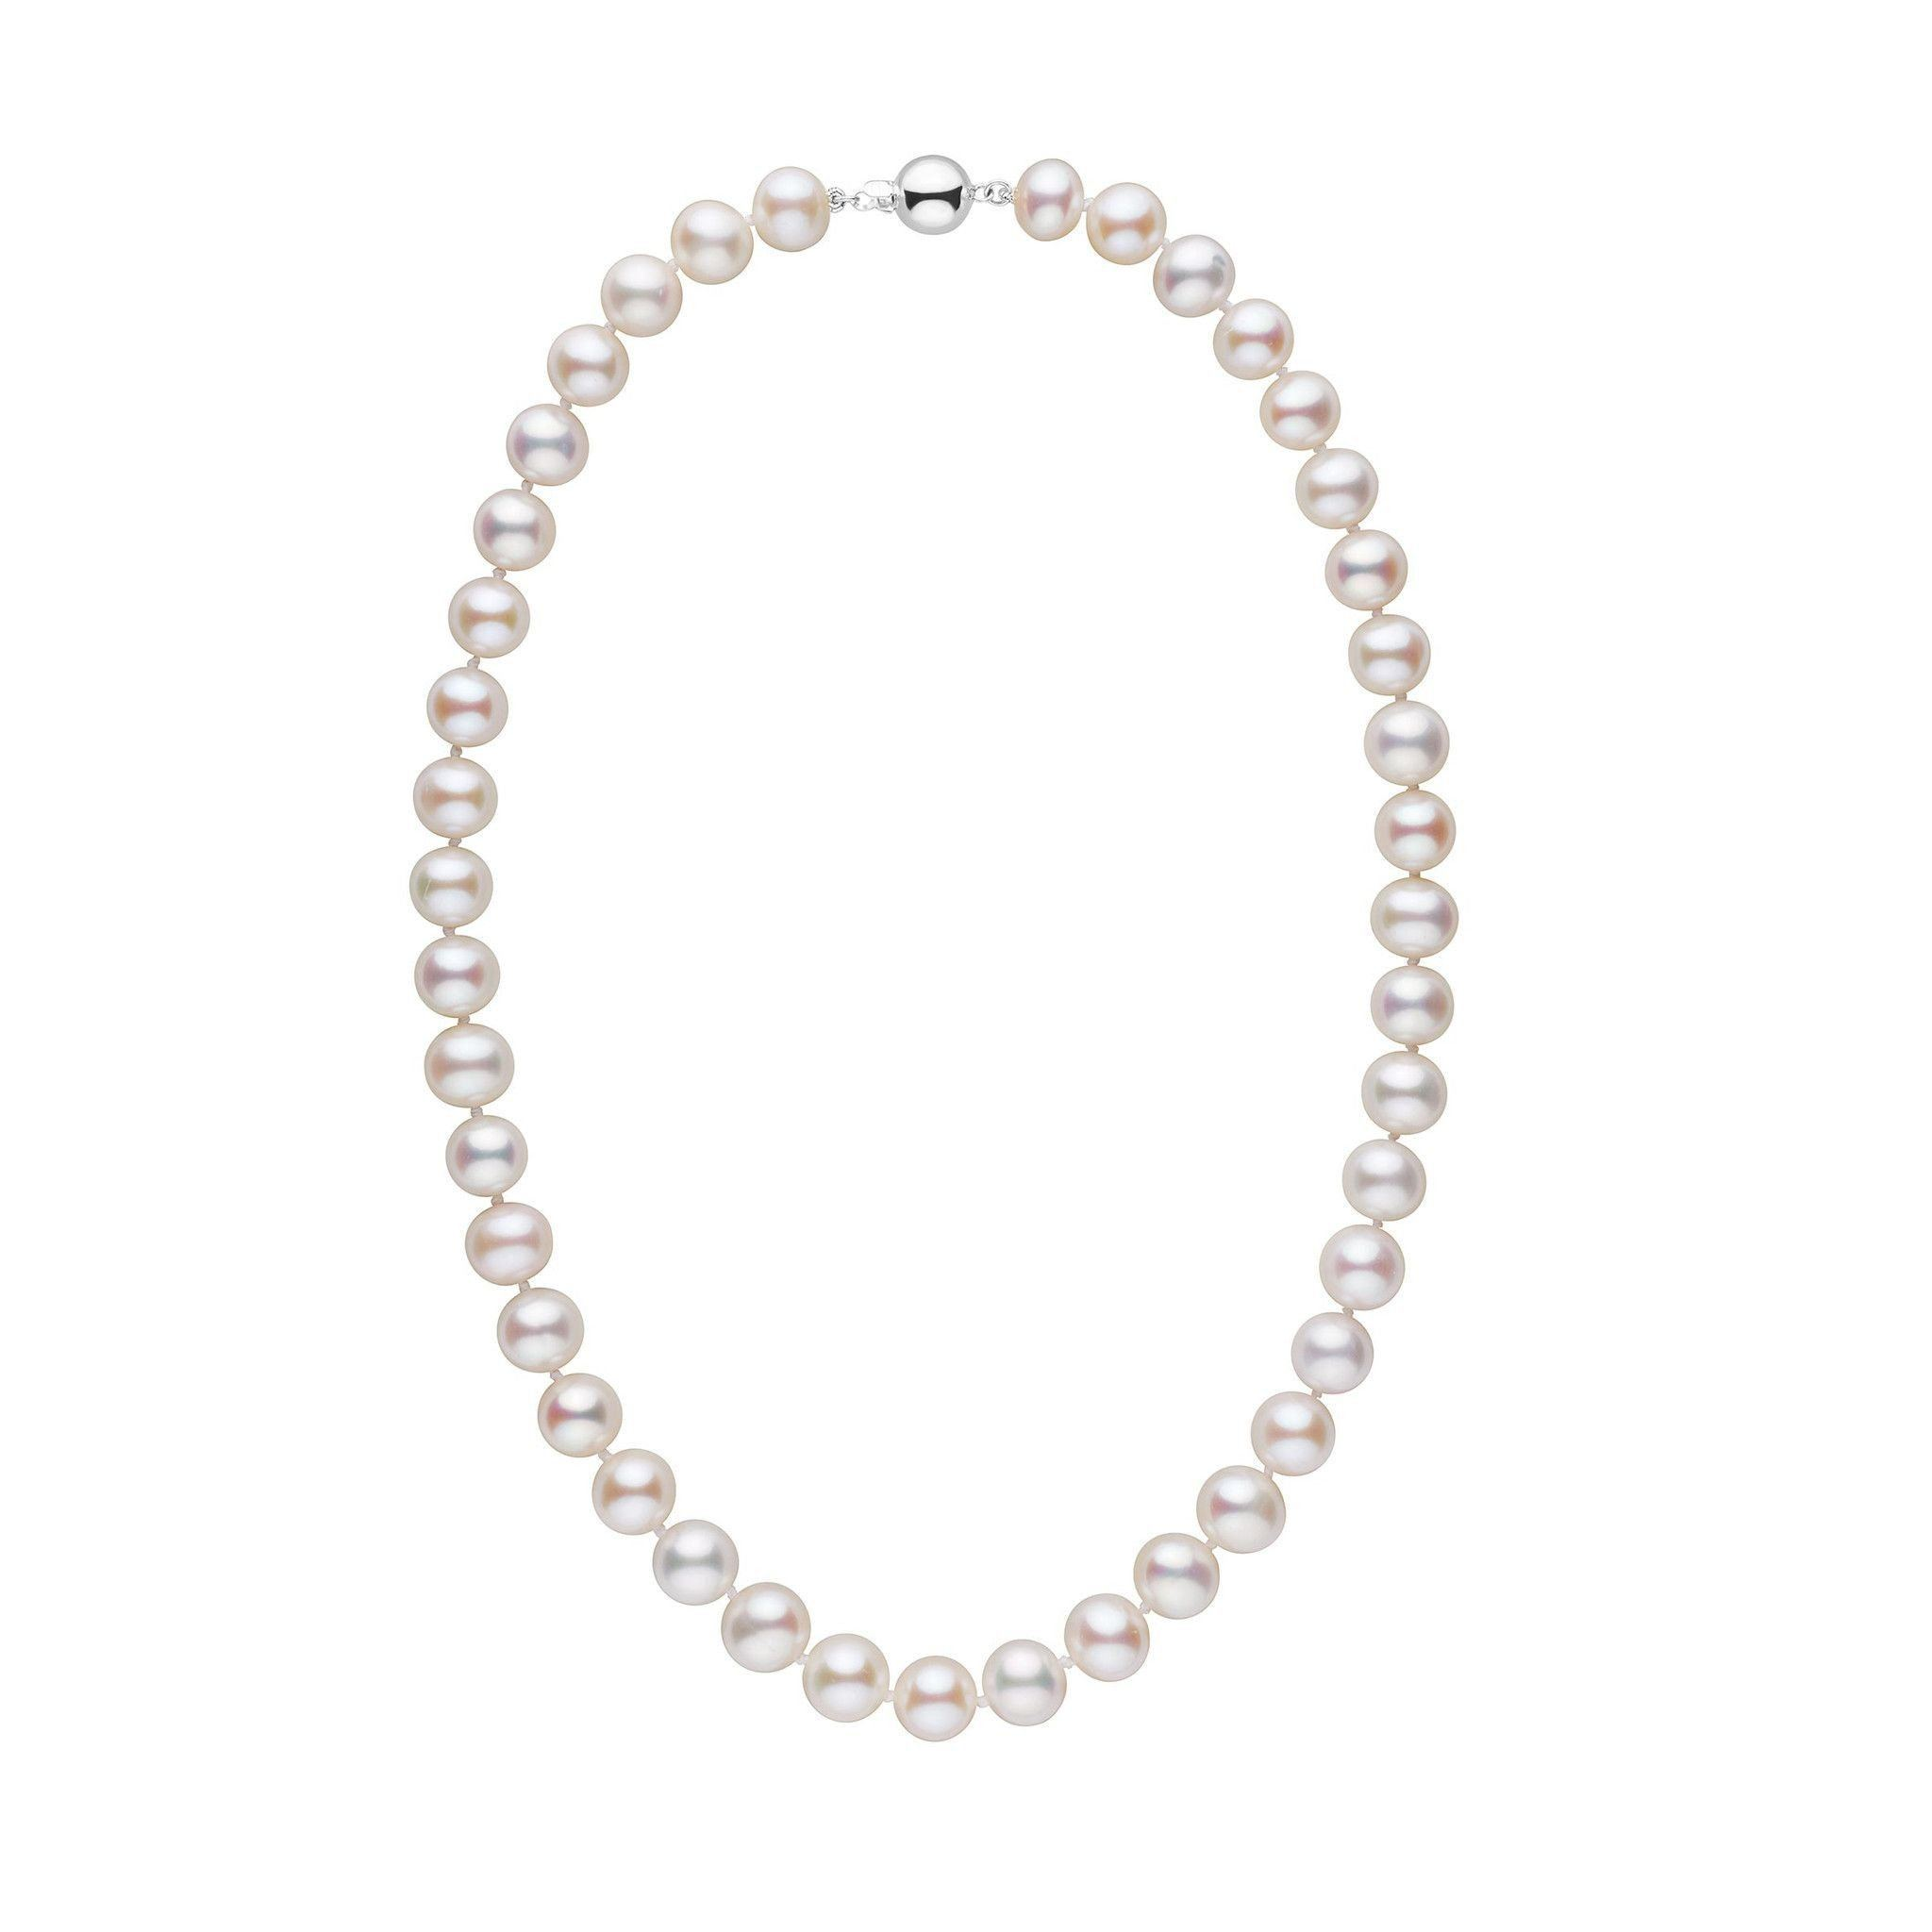 9.5-10.5 mm 18 inch AA+ White Freshwater Pearl Necklace